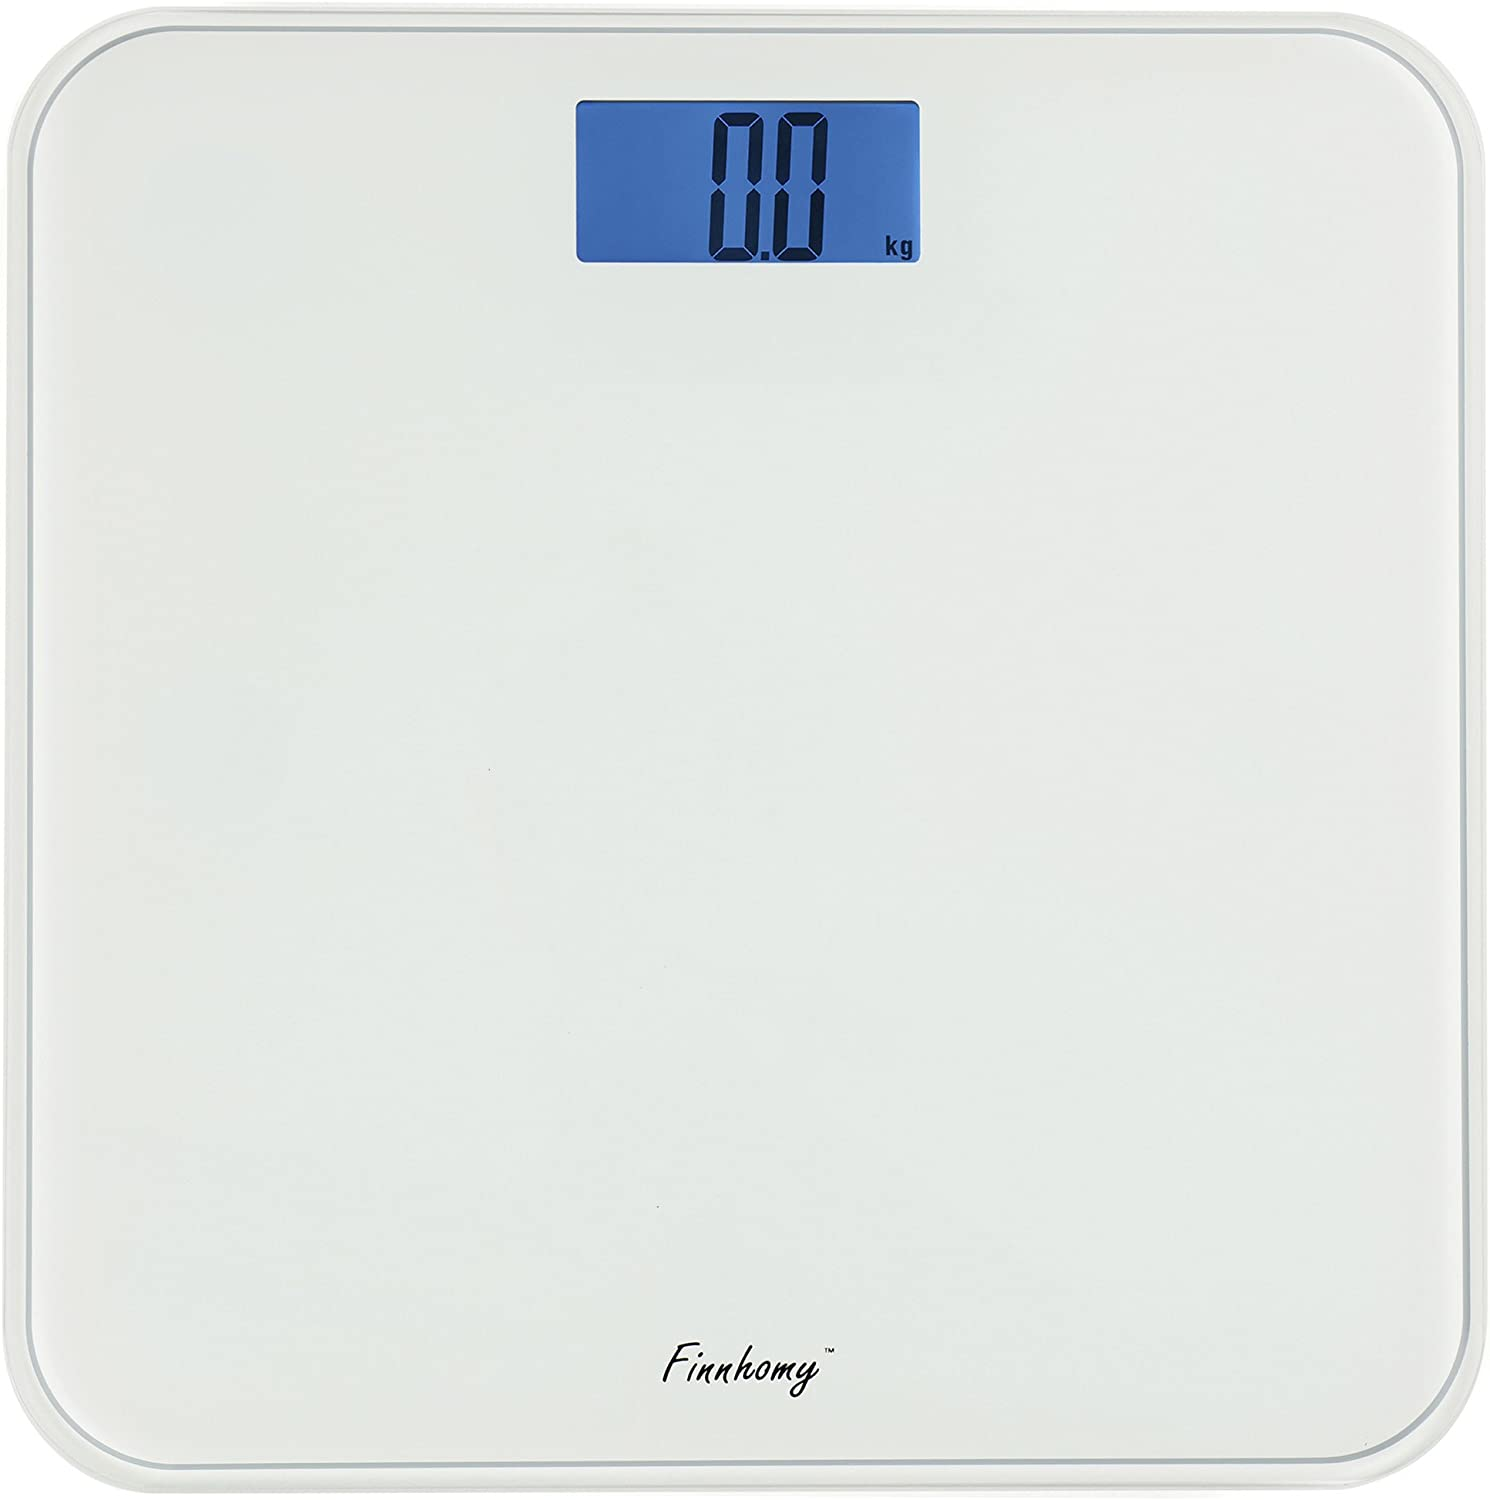 Finnhomy Digital Body Weight Bathroom Scale Step-on Auto-Calibrated 180 kg 400 lb Large Capacity Clear Backlit LCD Display Lager Platform 4 Precision Sensors Artistic Integrate Back White Color